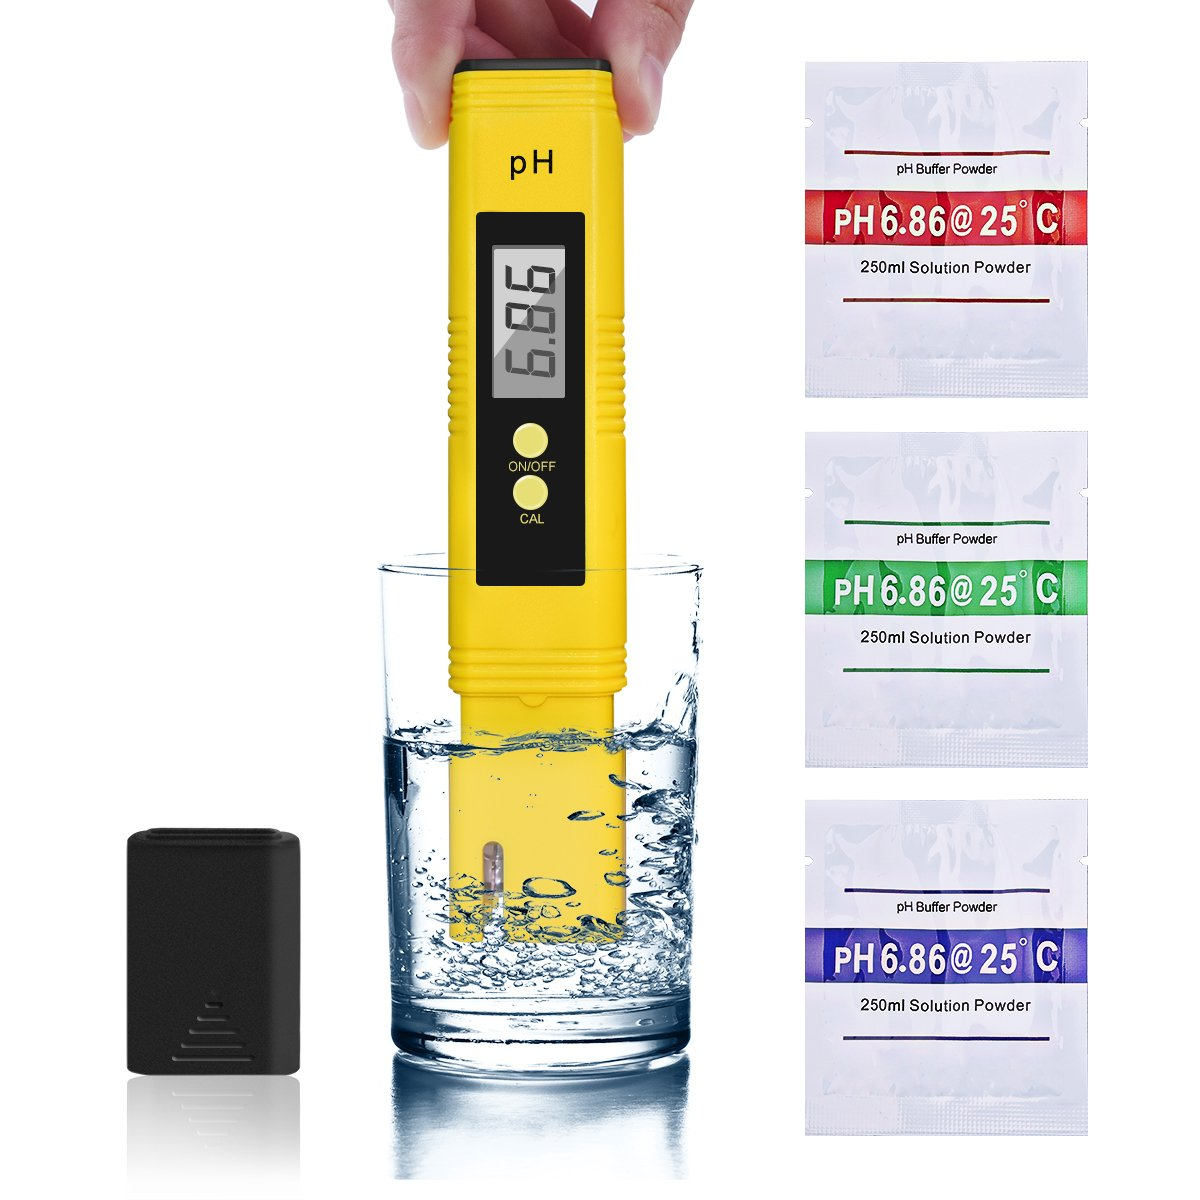 Digital PH Meter - IEFWELL PH Tester High Accuracy Water Quality Tester with 0-14 PH Measurement Range, PH Meter Kit with ATC for Household Drinking, Pool and Aquarium Water